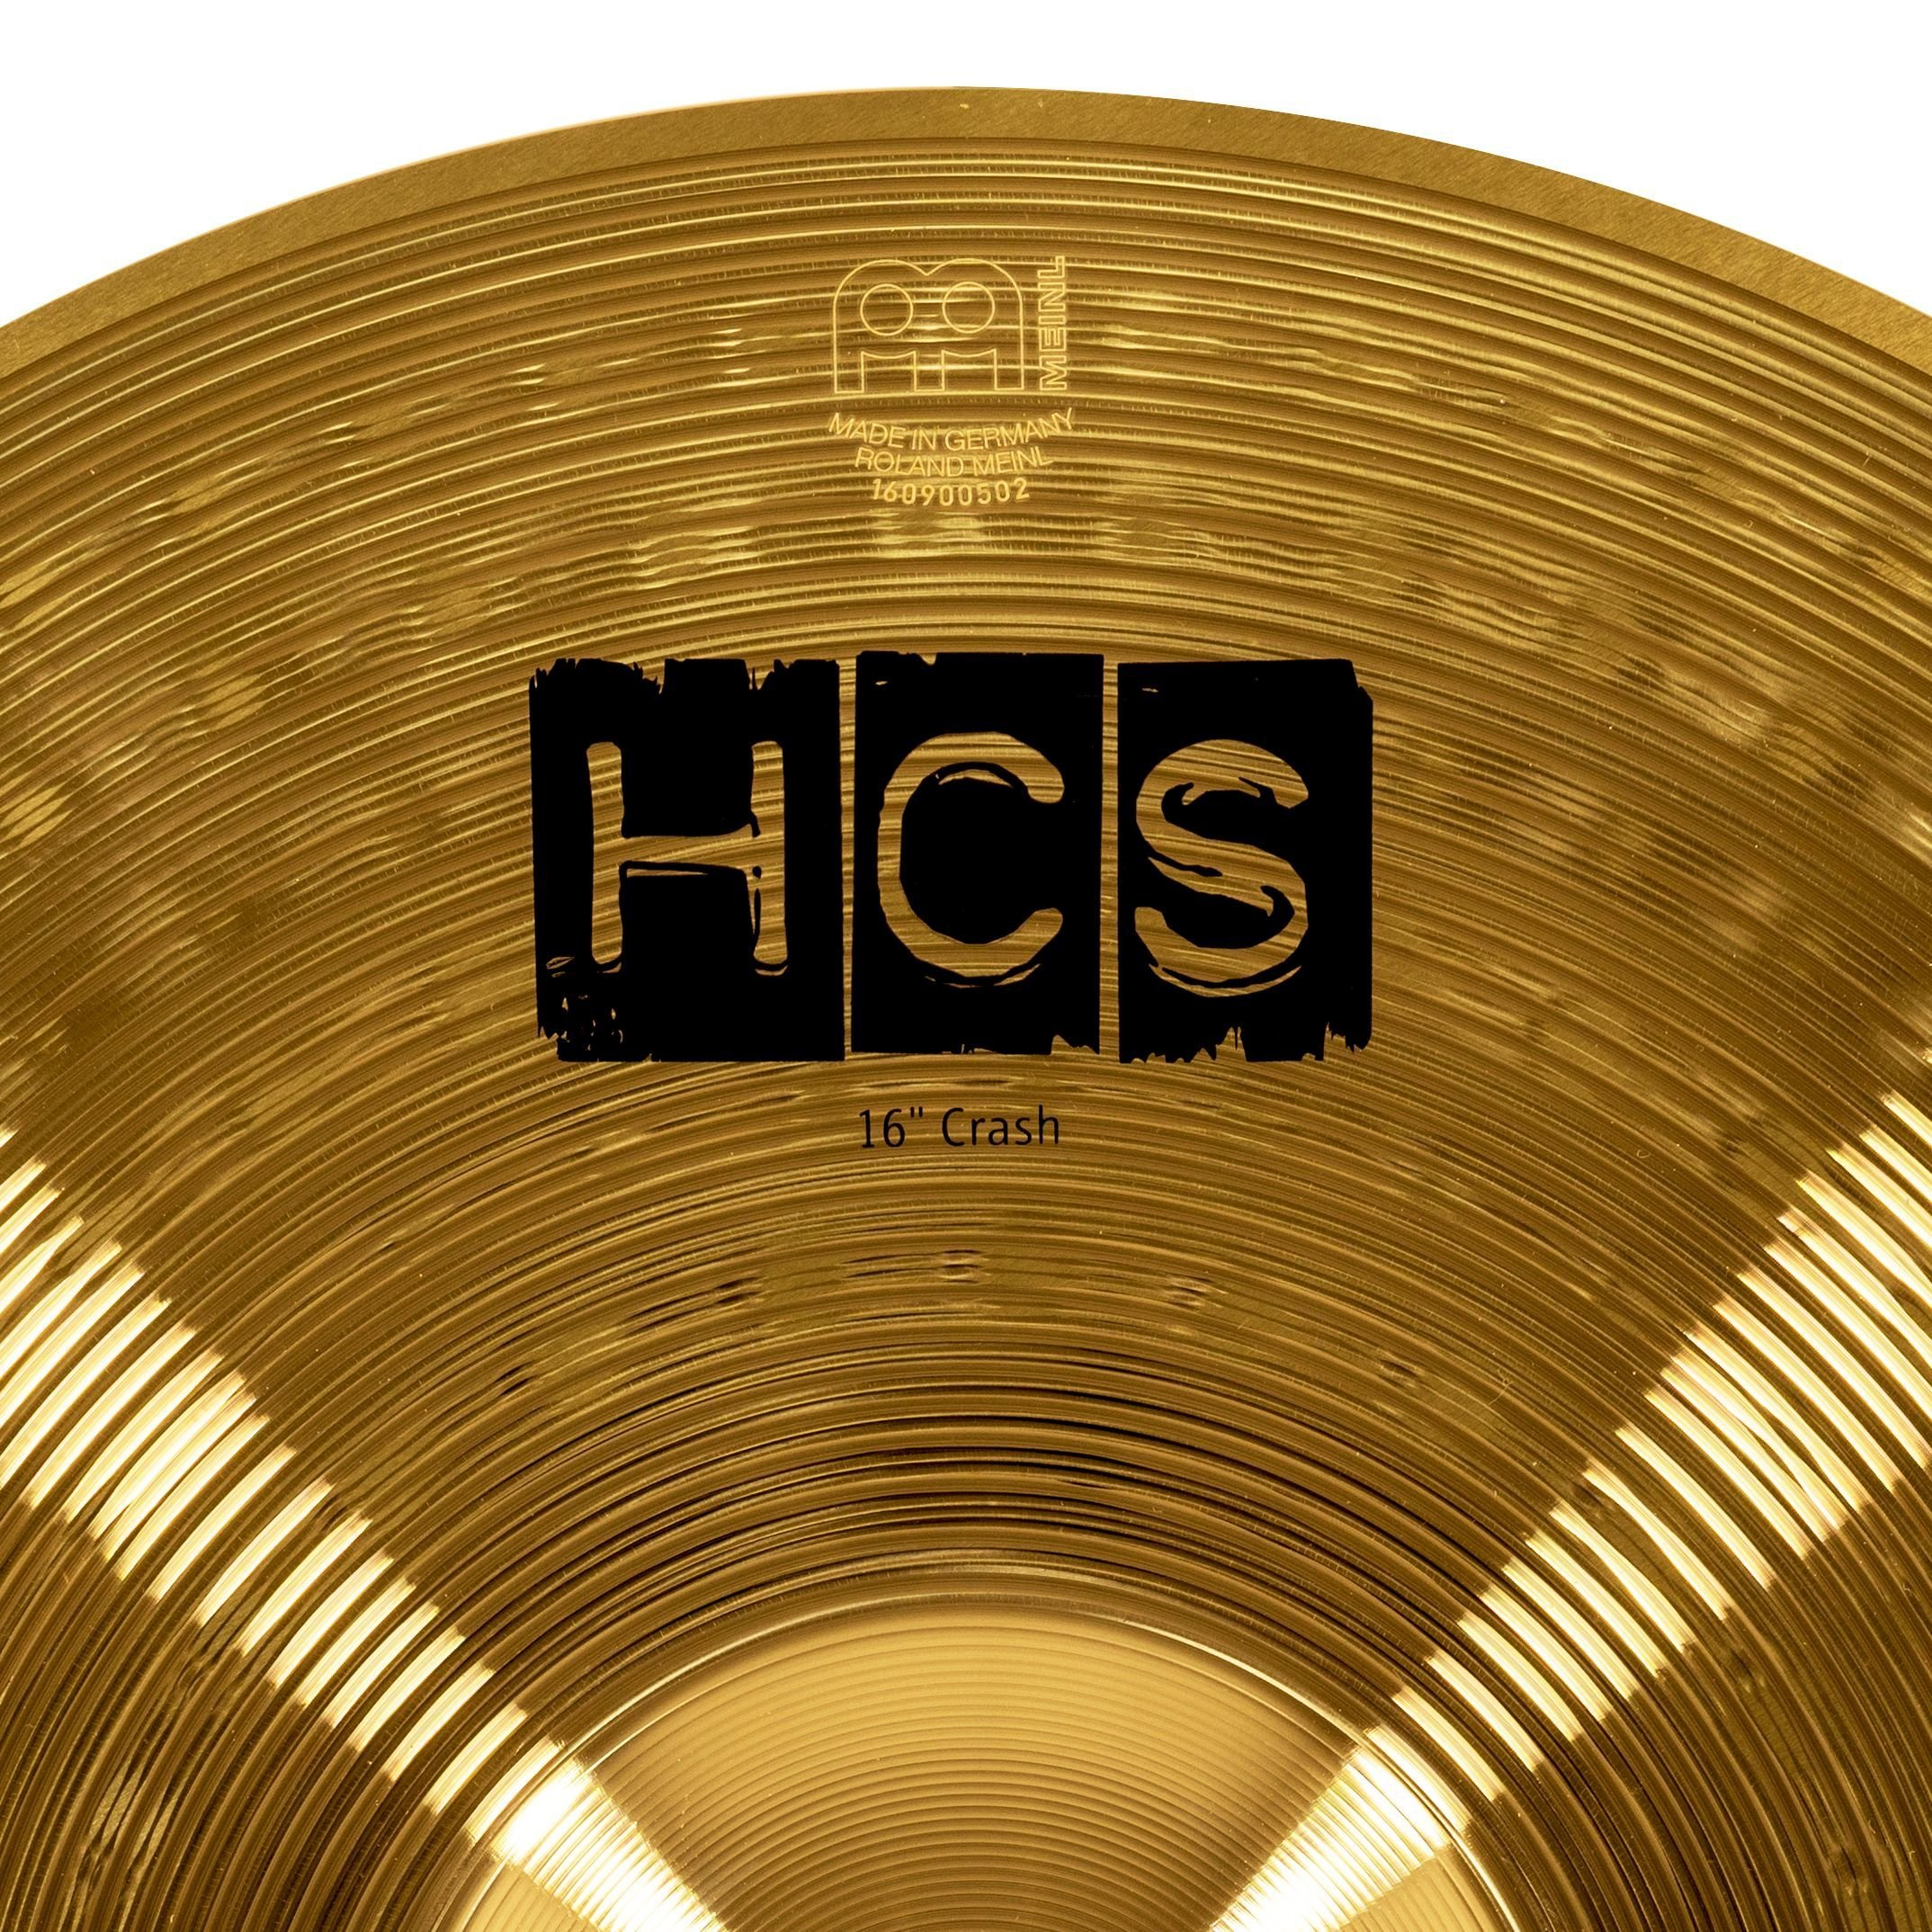 Meinl Cymbals HCS16C 16'' HCS Brass Crash Cymbal for Drum Set (VIDEO) by Meinl Cymbals (Image #4)